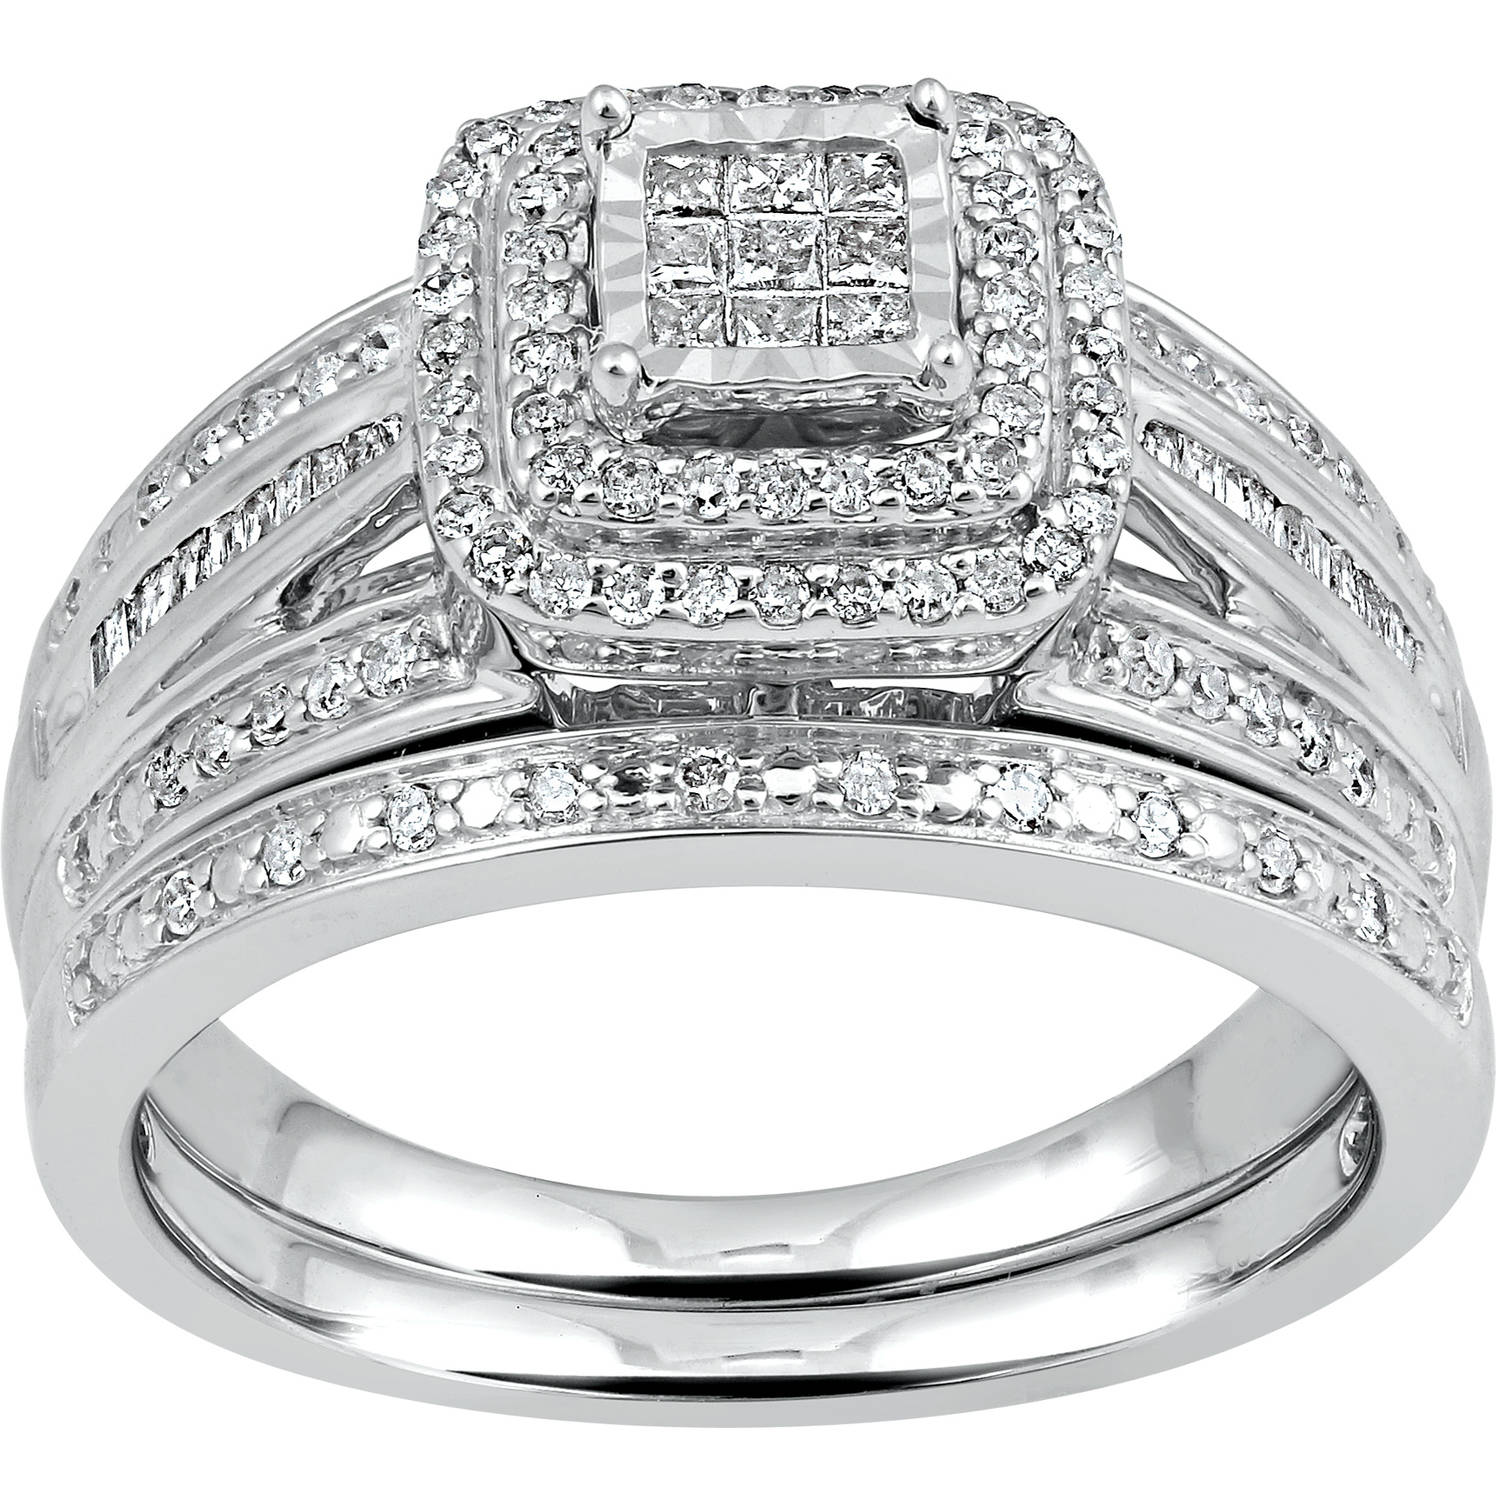 Forever Bride 12 Carat TW Diamond Princess Quad Sterling Silver